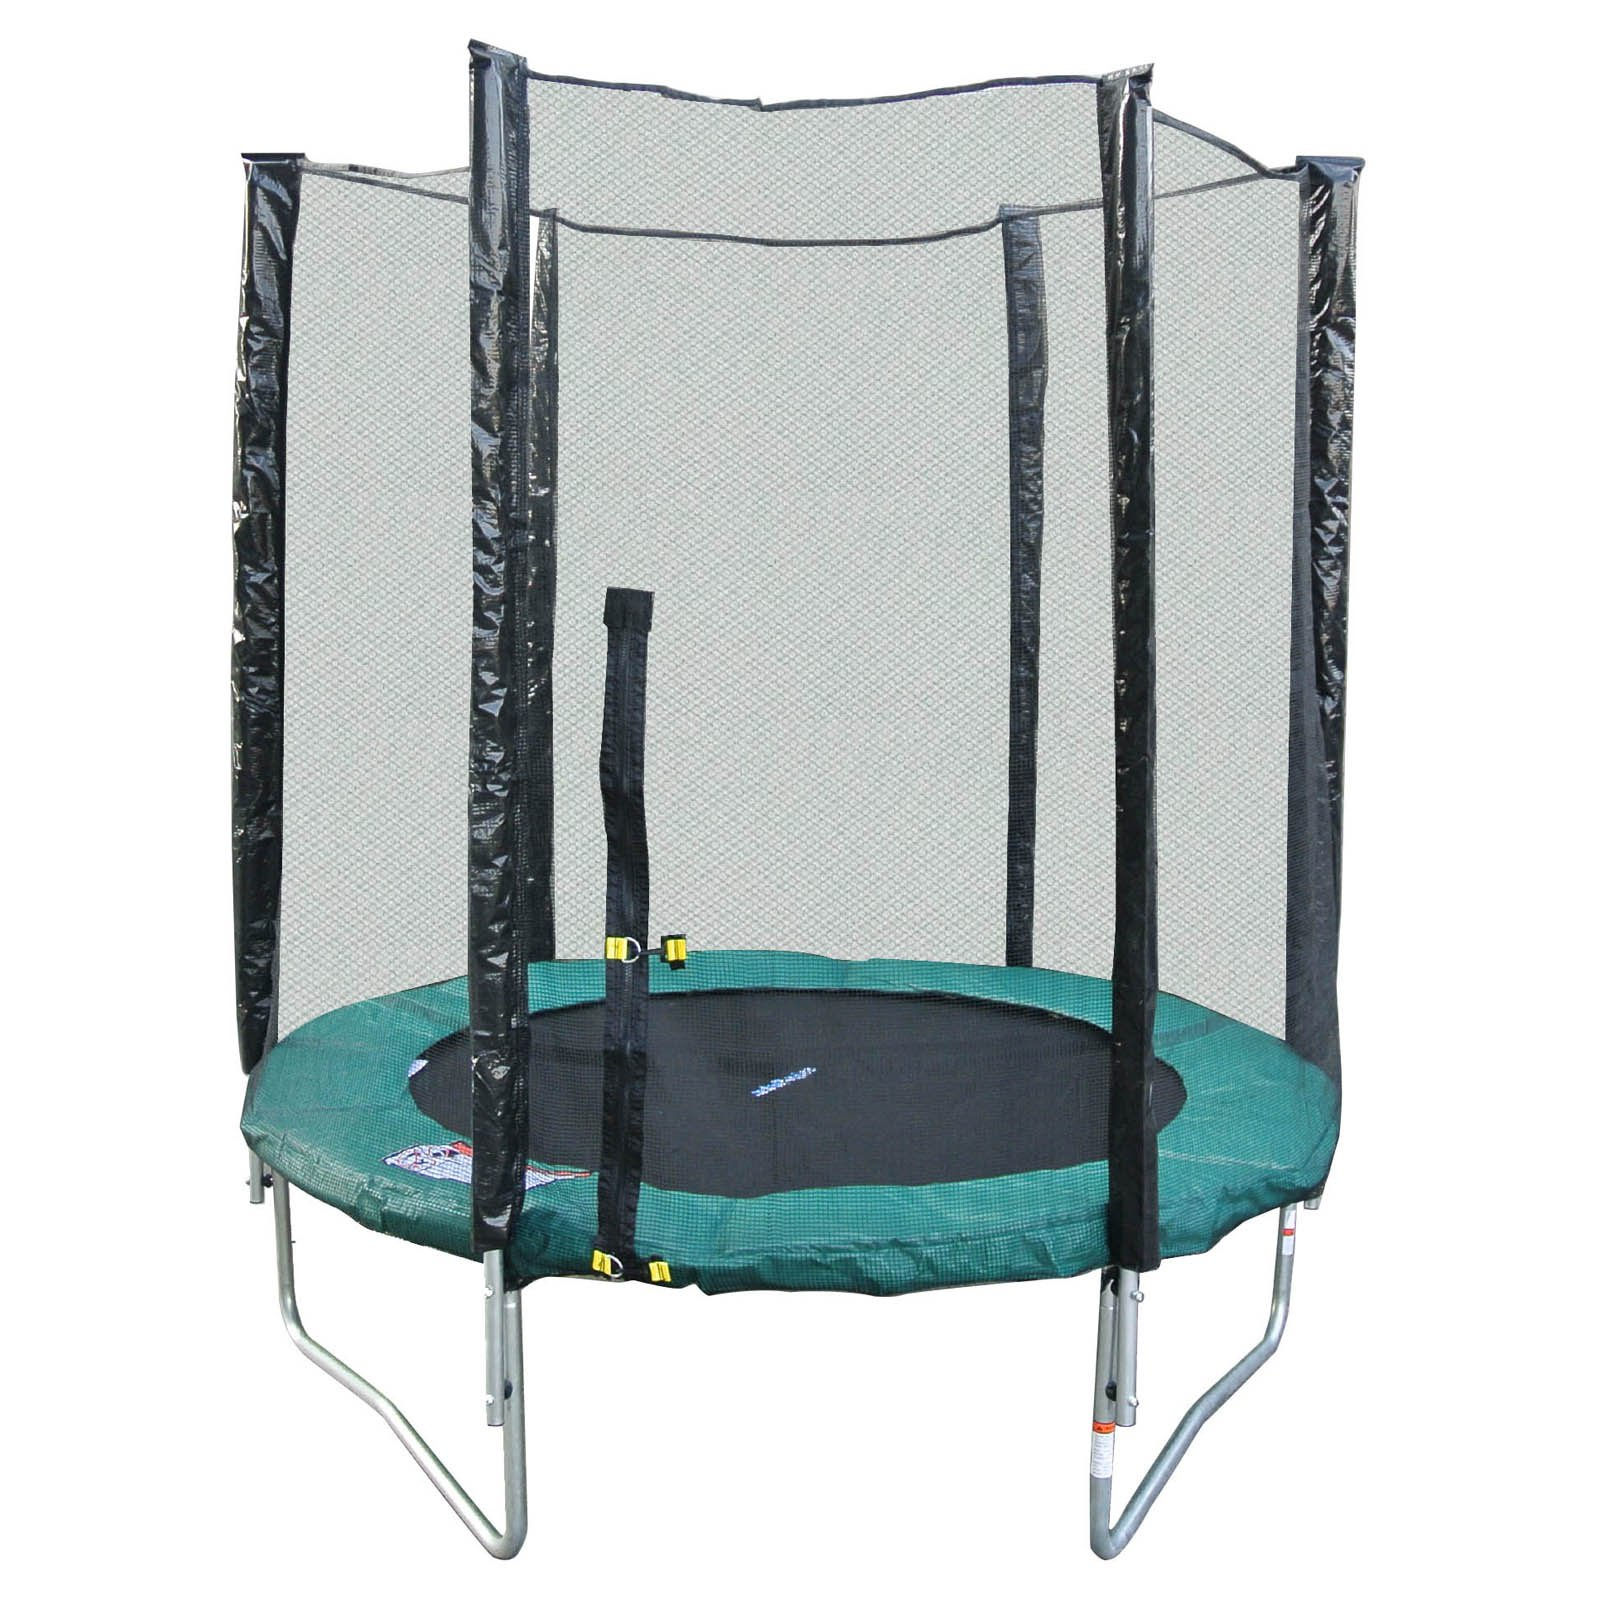 Super Jumper 6 ft. Trampoline with Enclosure